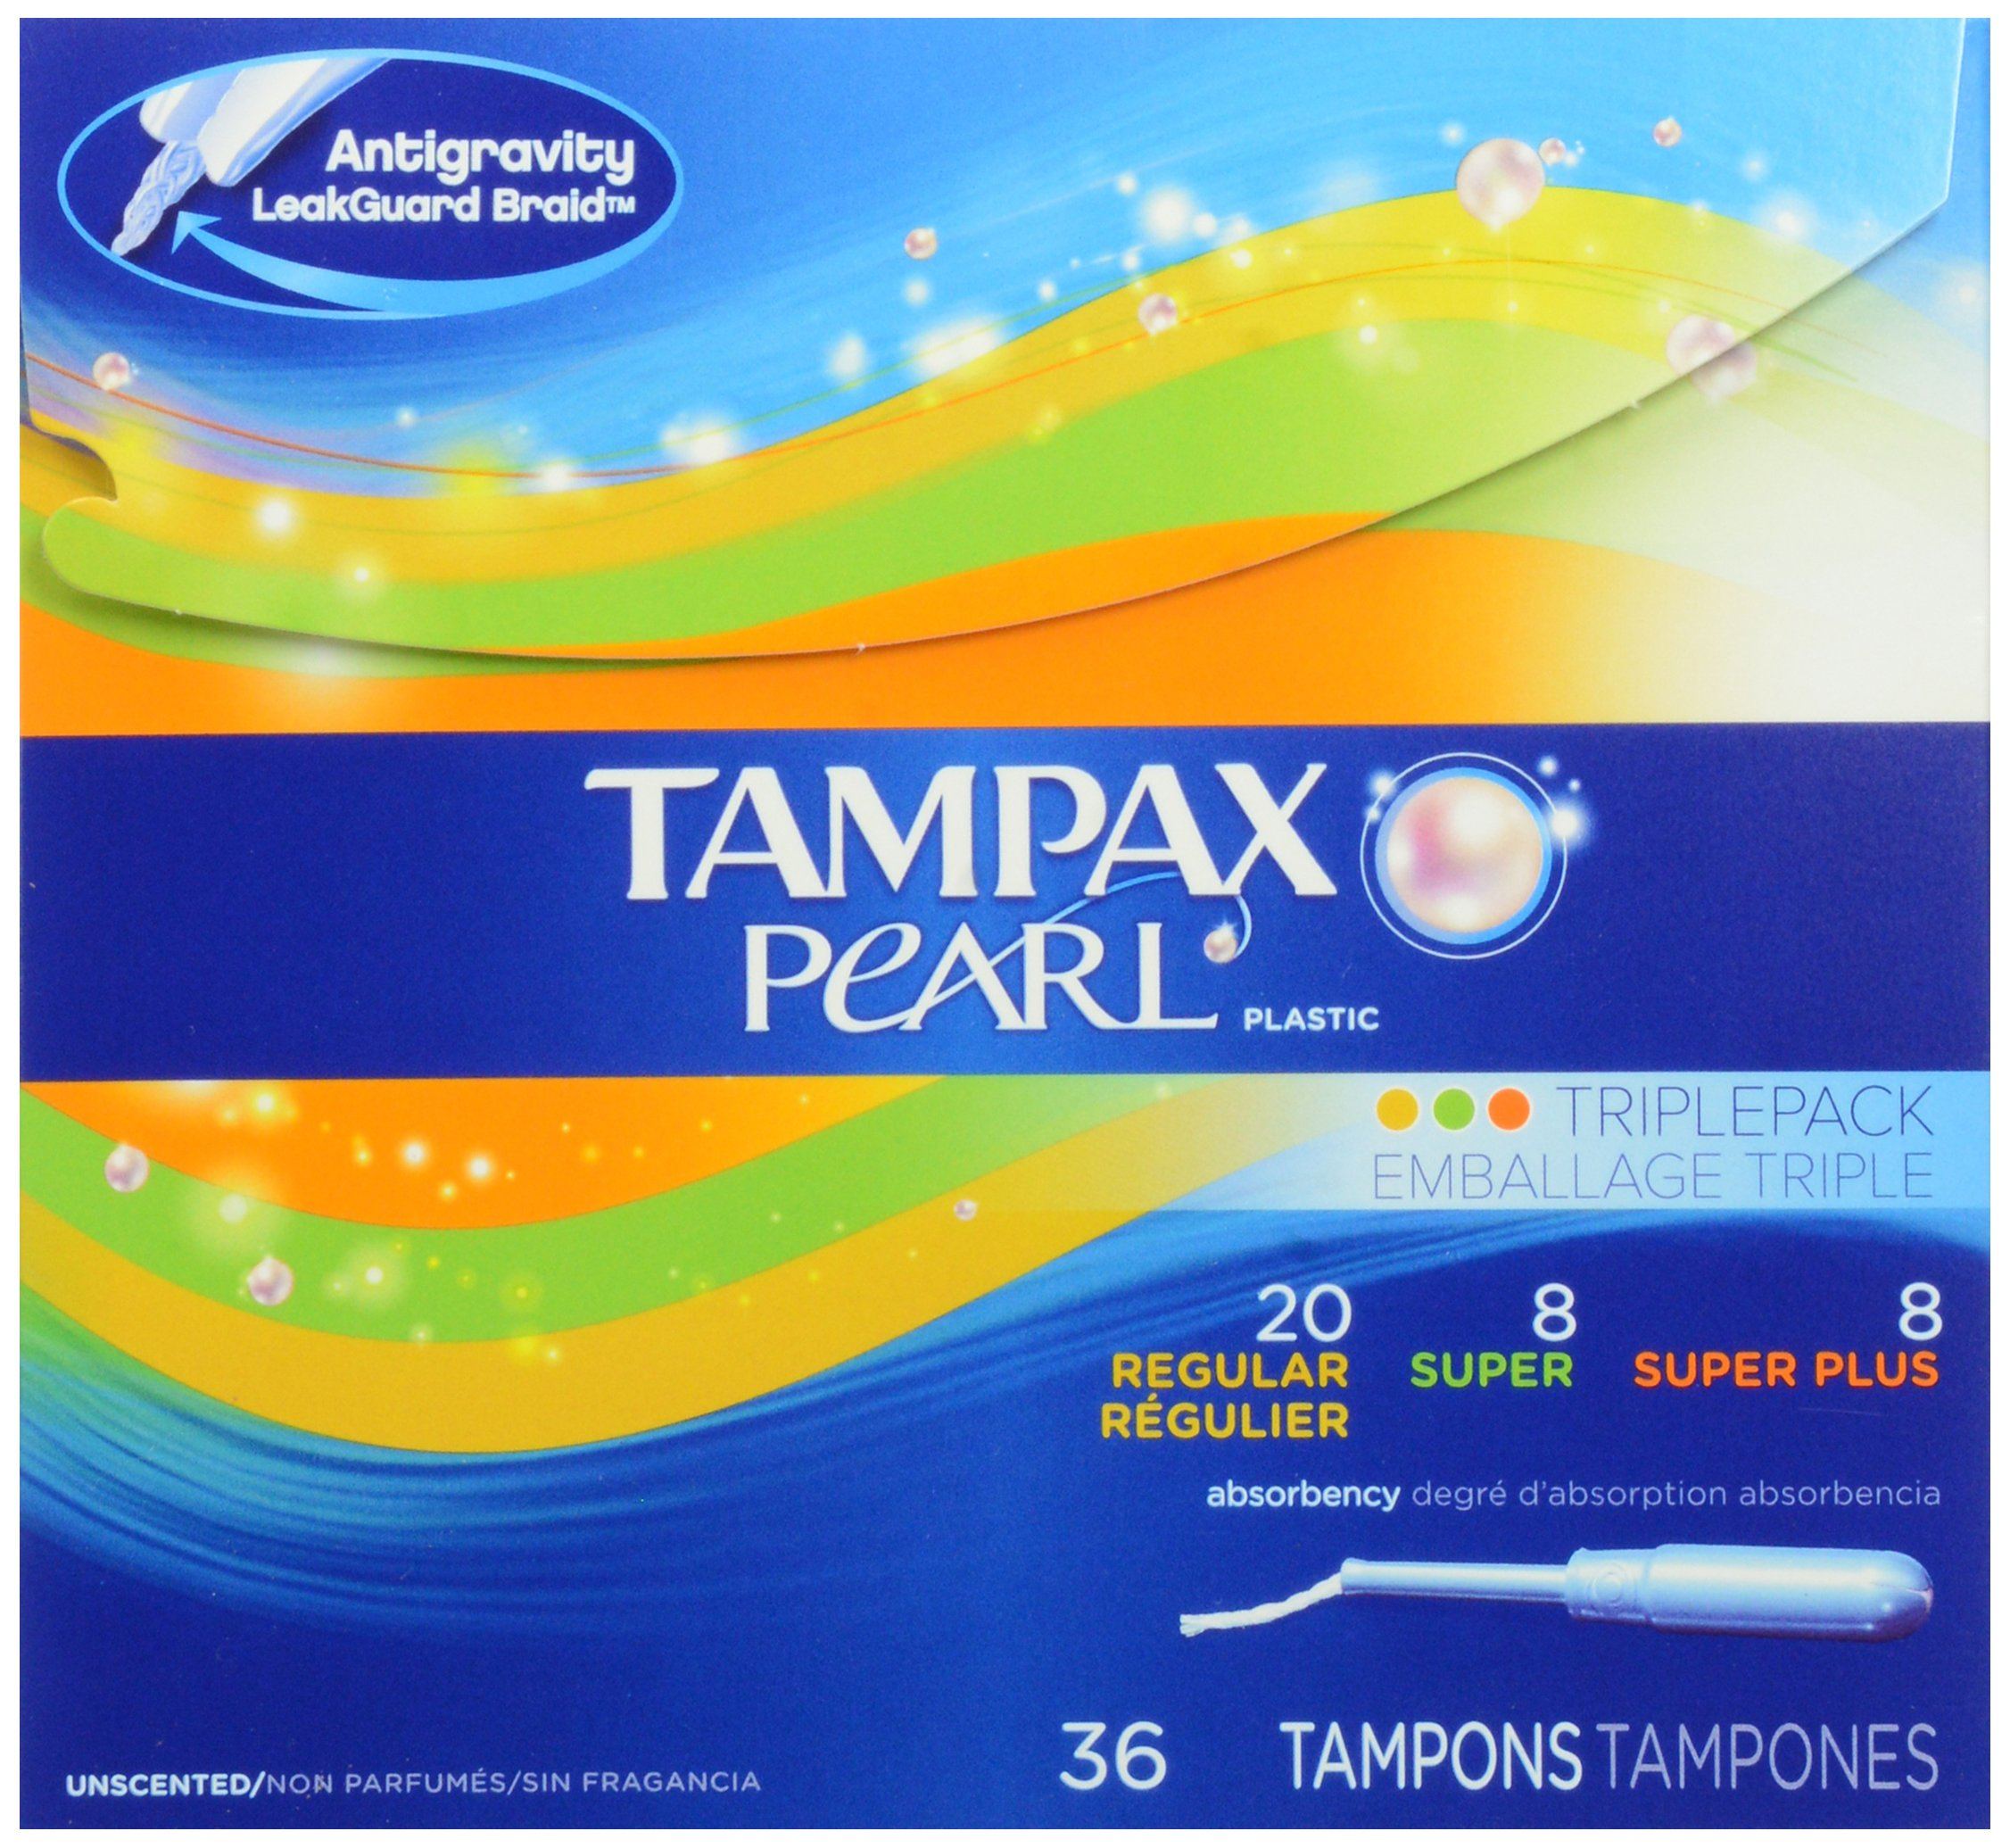 Tampax Pearl Plastic Triple Pack, Regular/Super/Super Plus Absorbency, Unscented Tampons, 36 Count (Pack of 2)